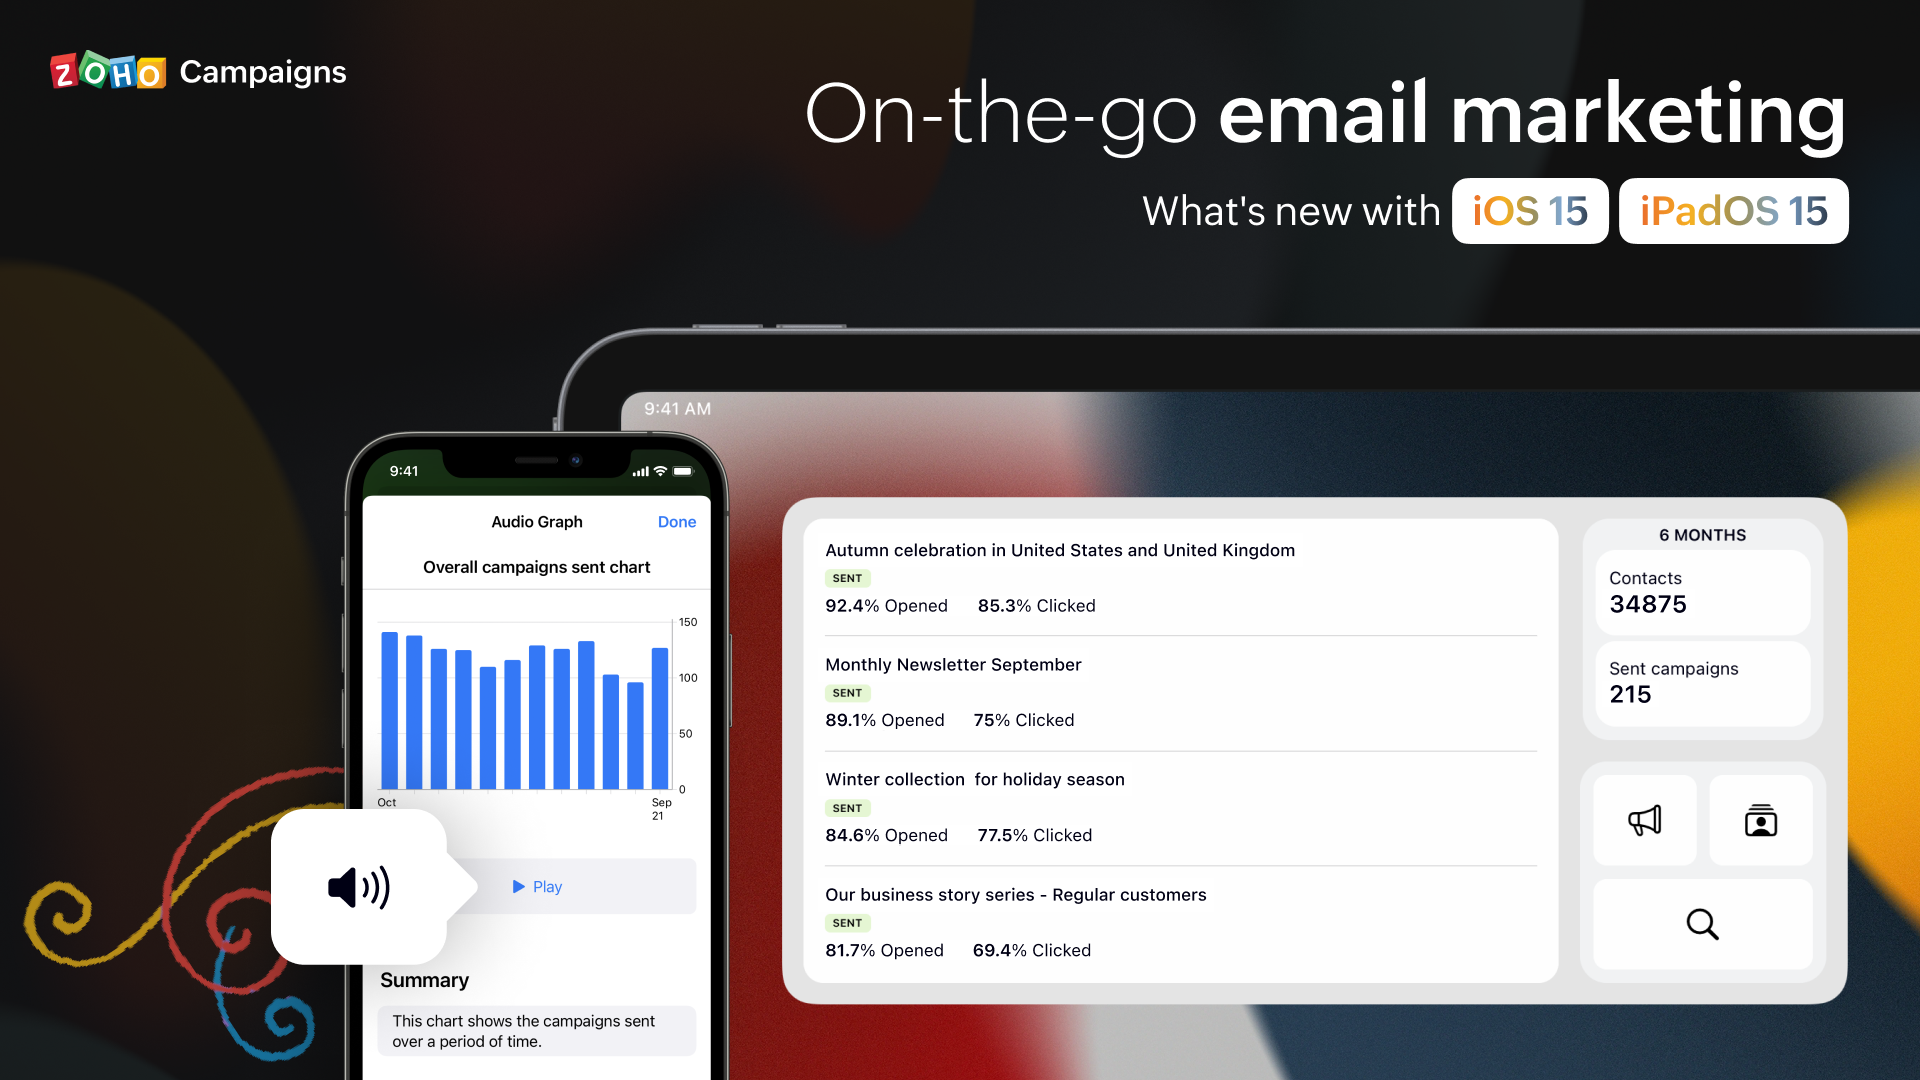 On-the-go email marketing—What's new with Apple's latest iOS 15 and iPadOS 15